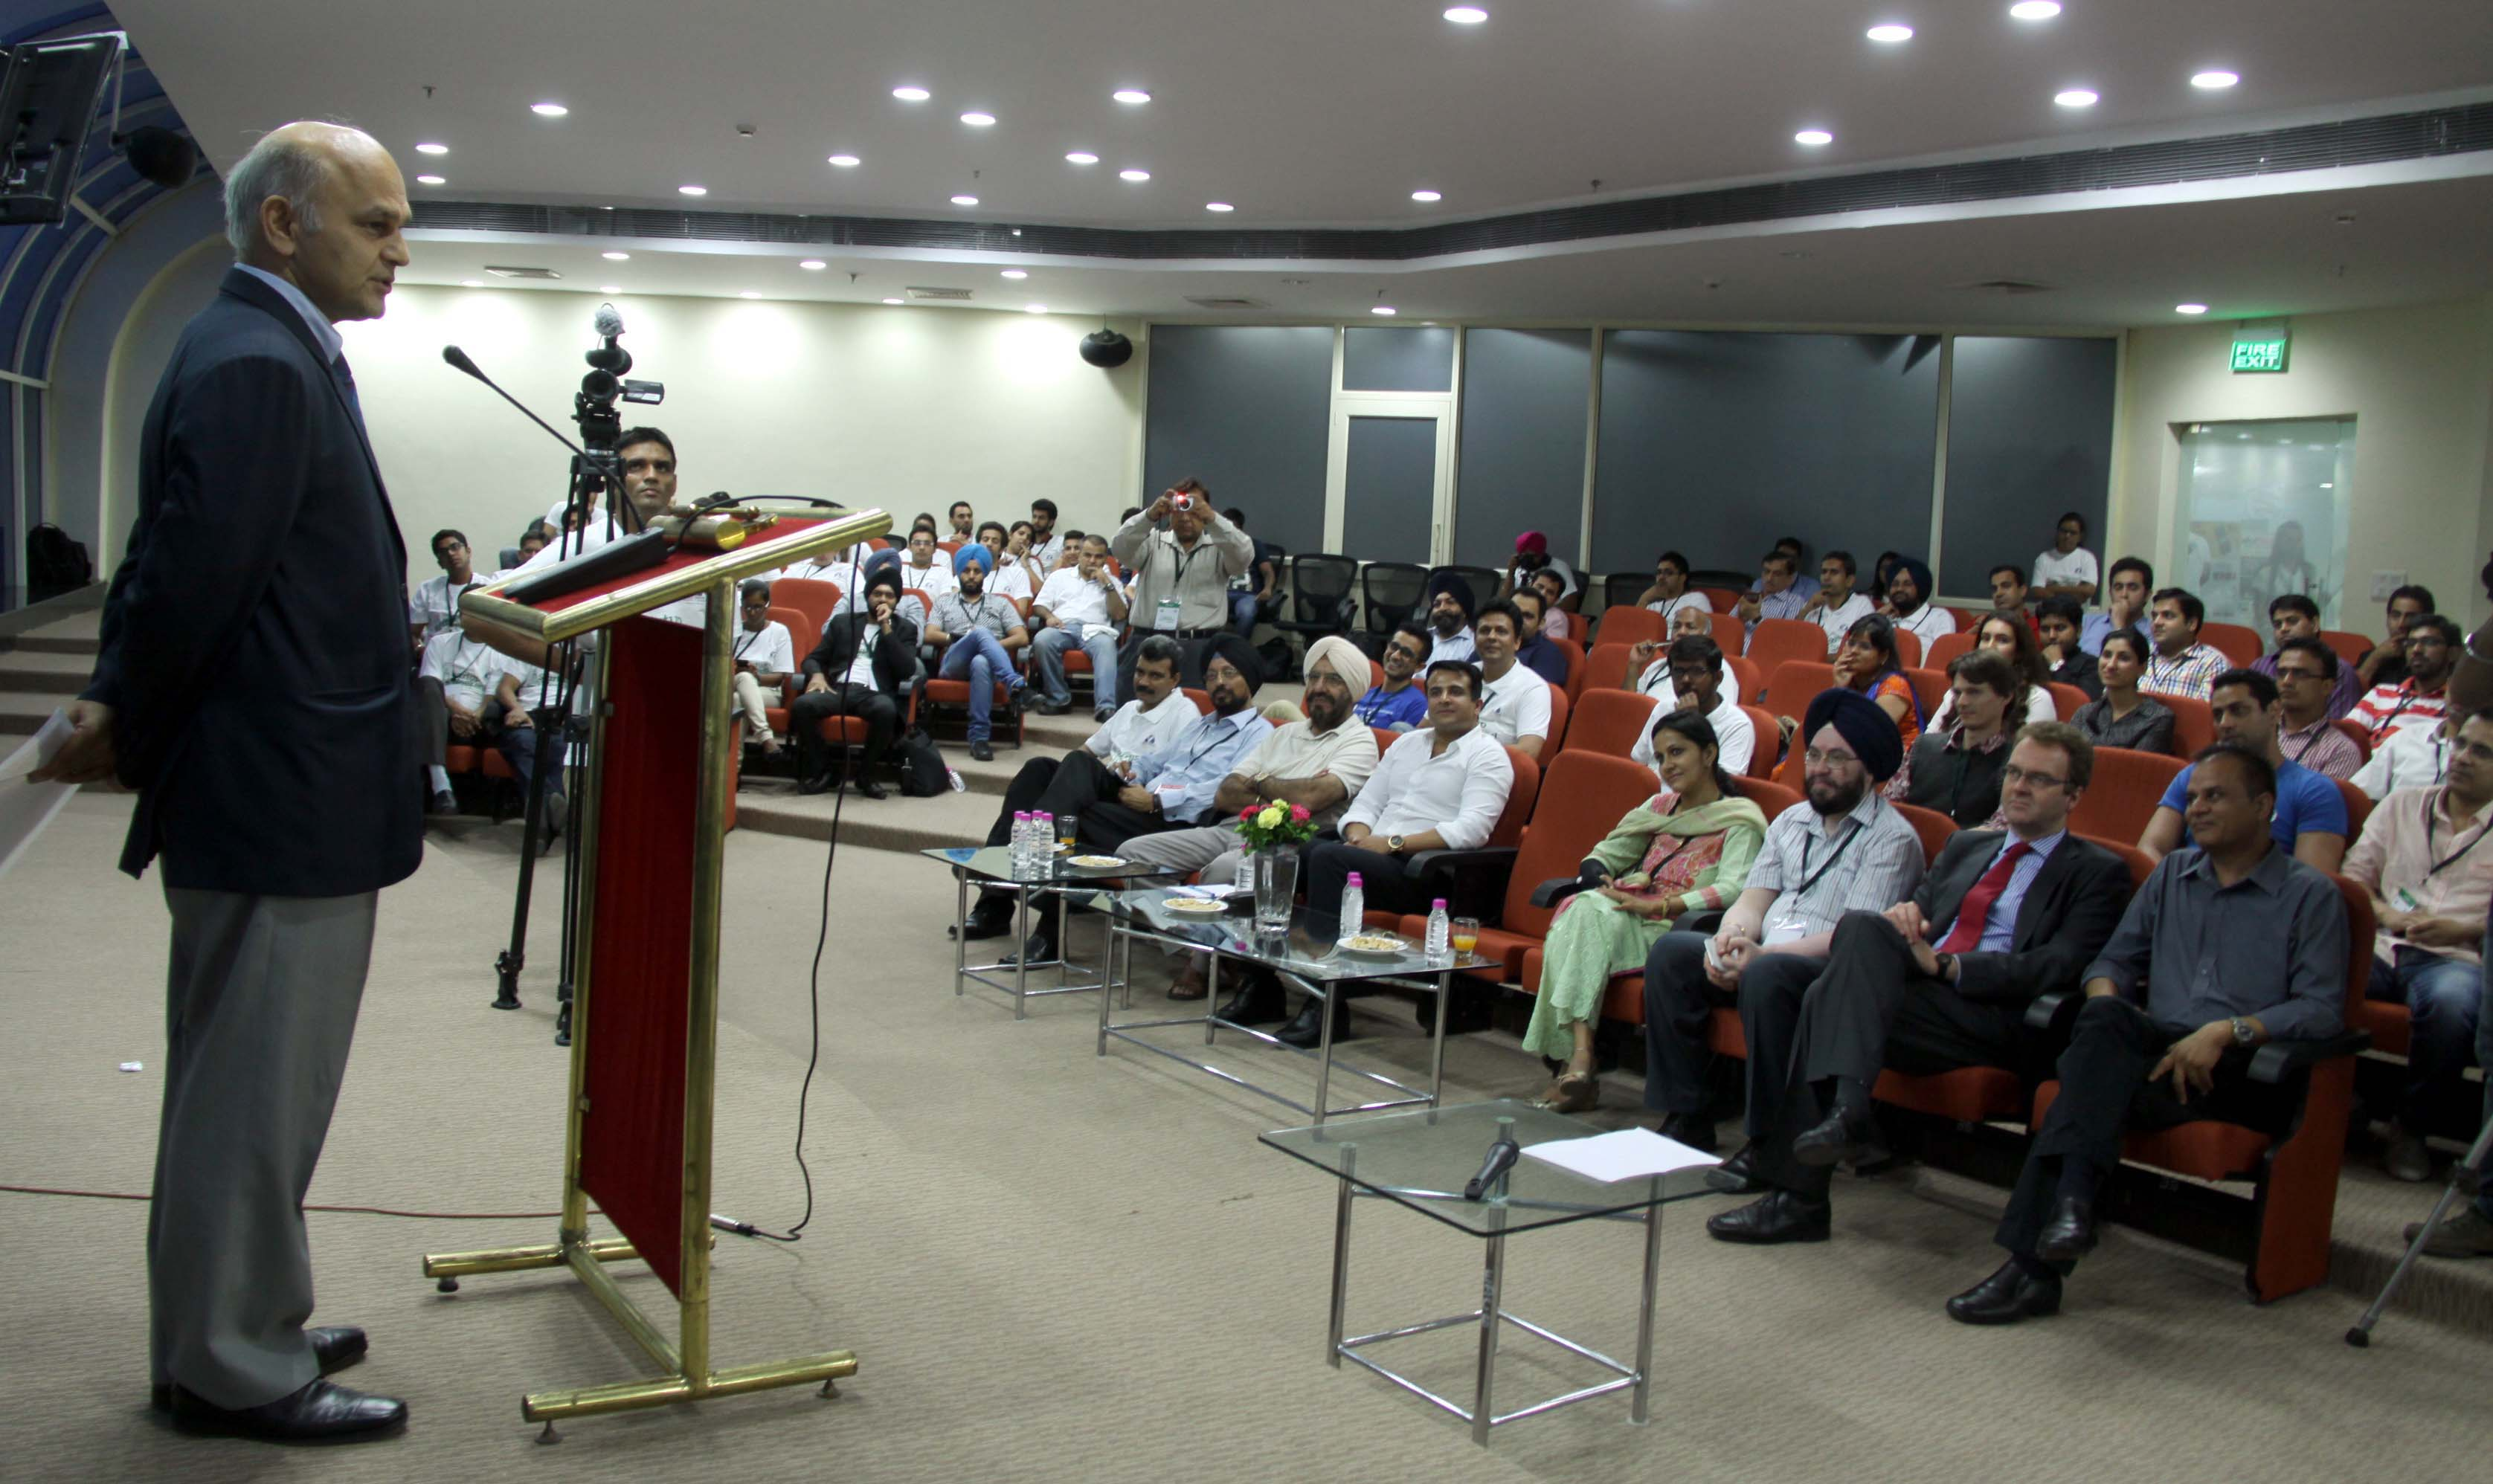 The Adviser to the Administrator, UT, Chandigarh, Mr. K.K. Sharma addressing in the Three-Days Startup Weekend at the Entrepreneurship Development Centre, Rajiv Gandhi Technology Park, Chandigarh on Friday, July 25, 2014.